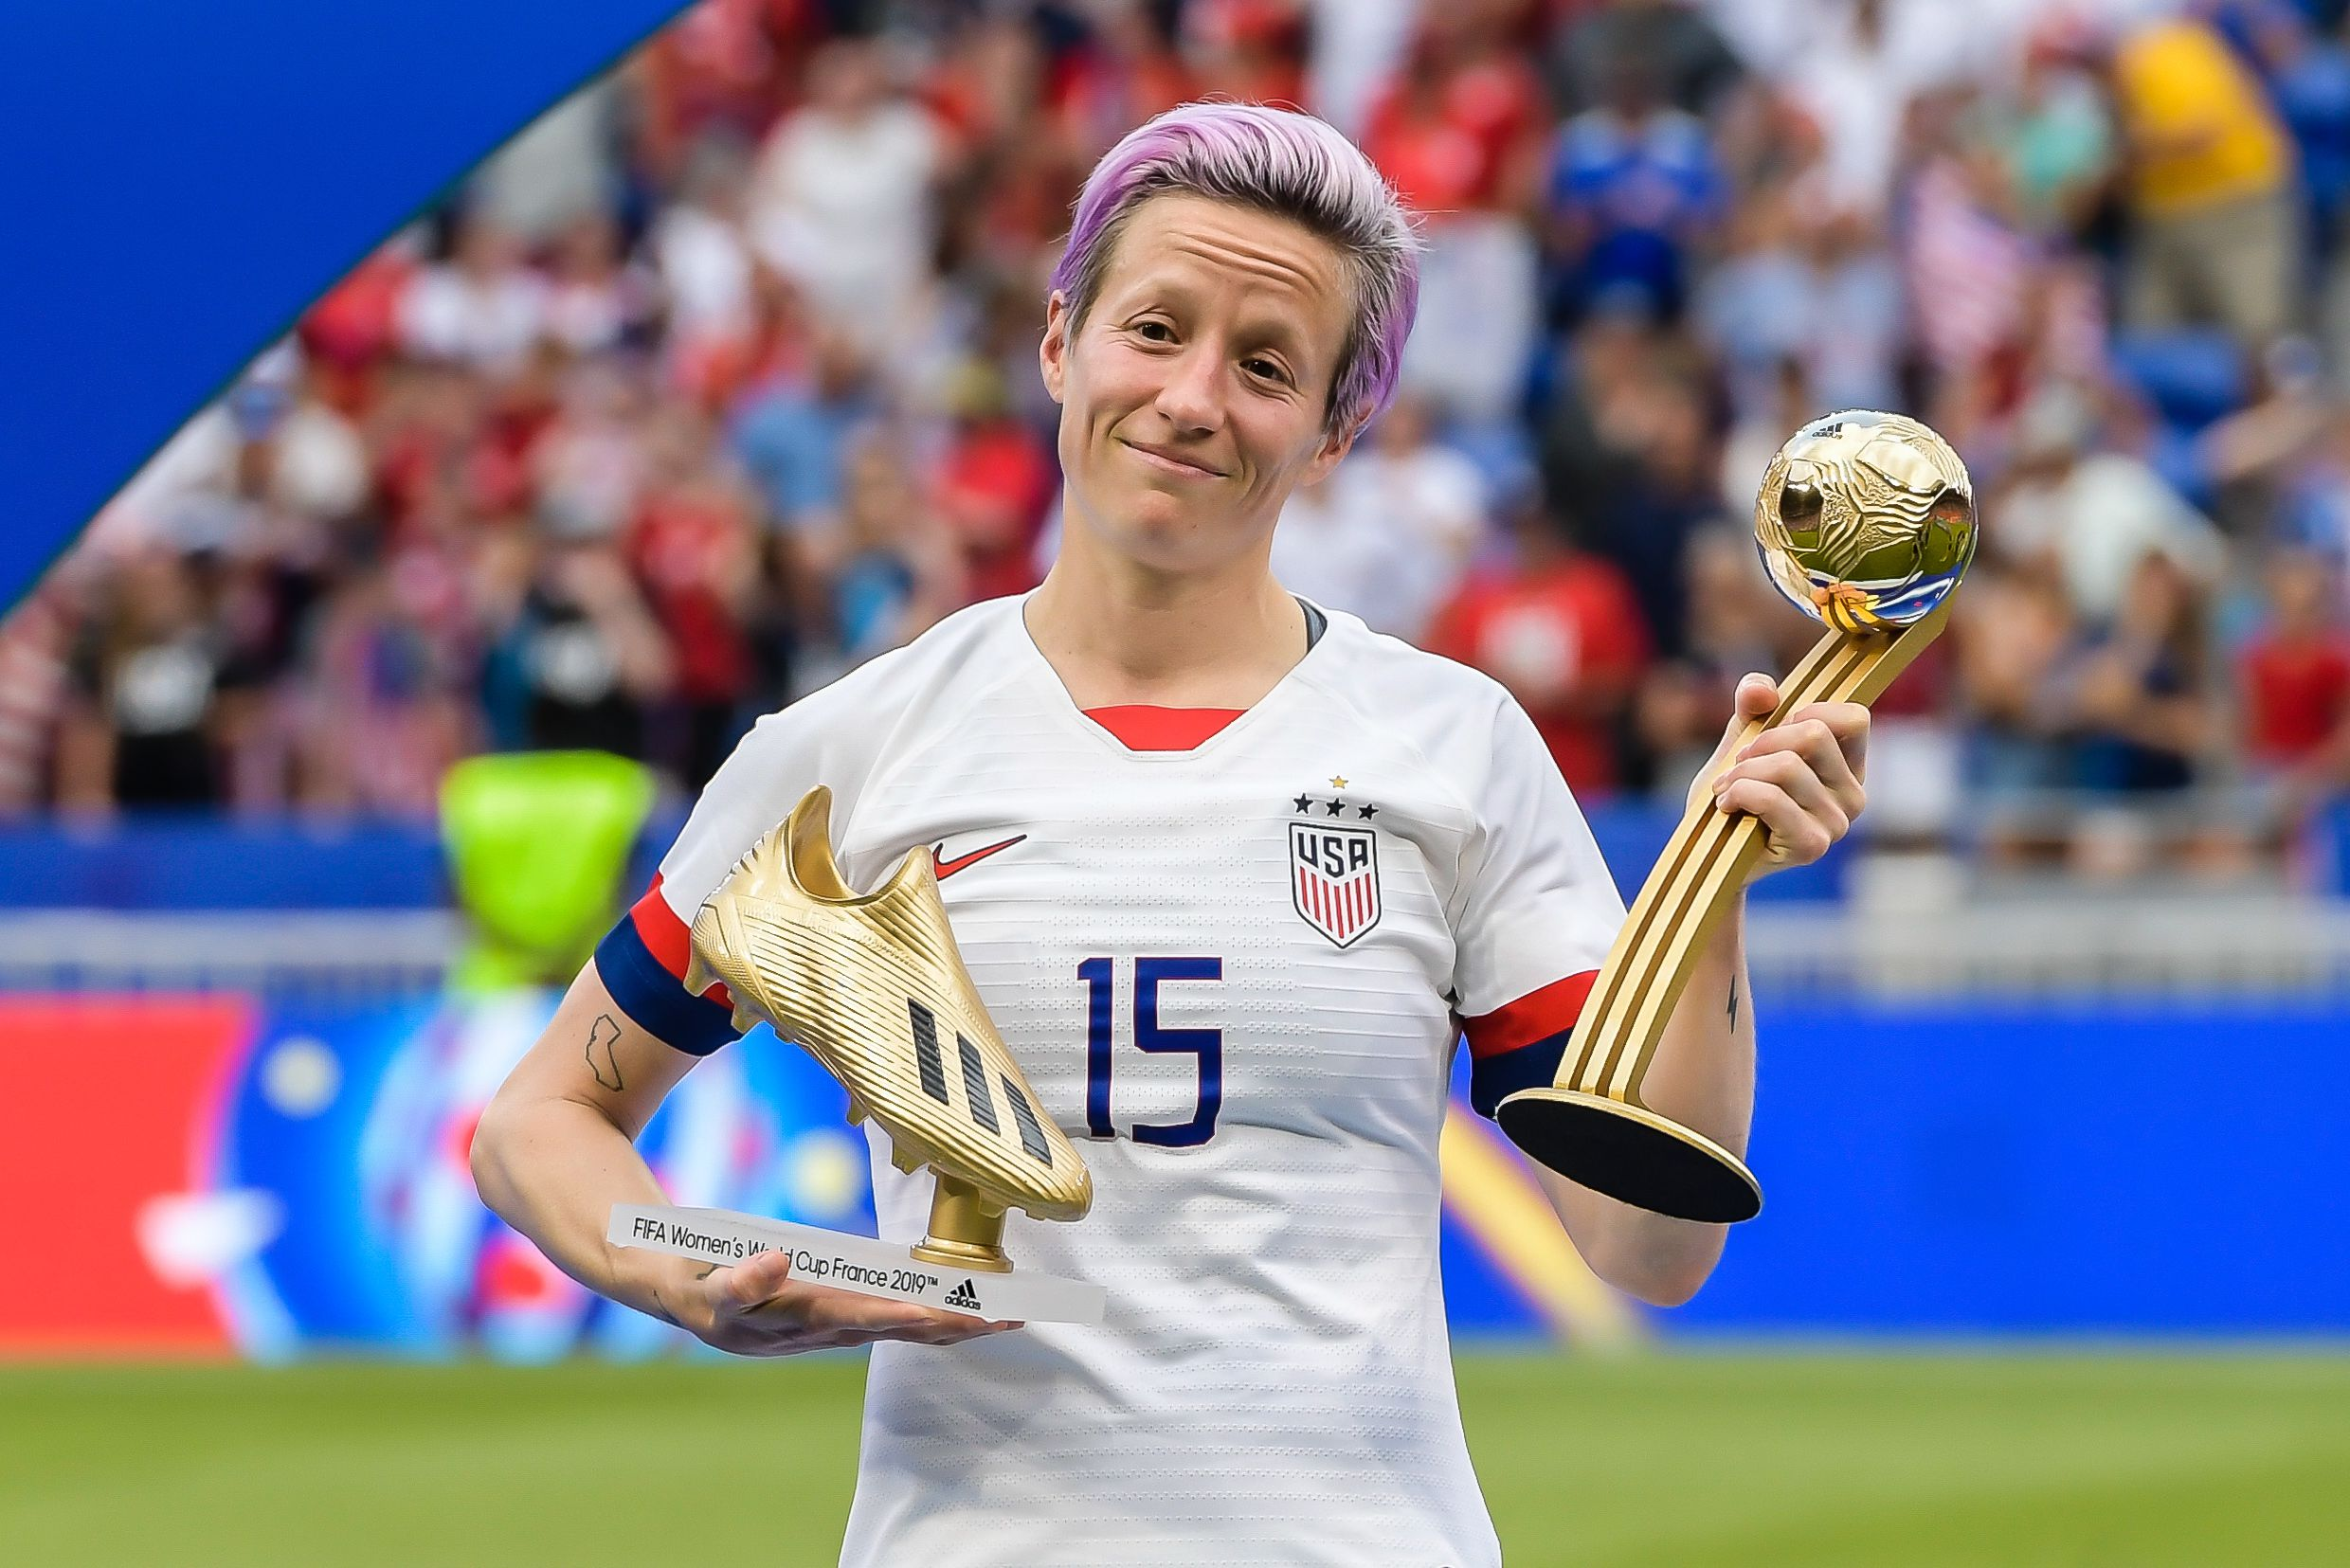 Megan Rapinoe Is the Most Tweeted about Female Athlete of the Year